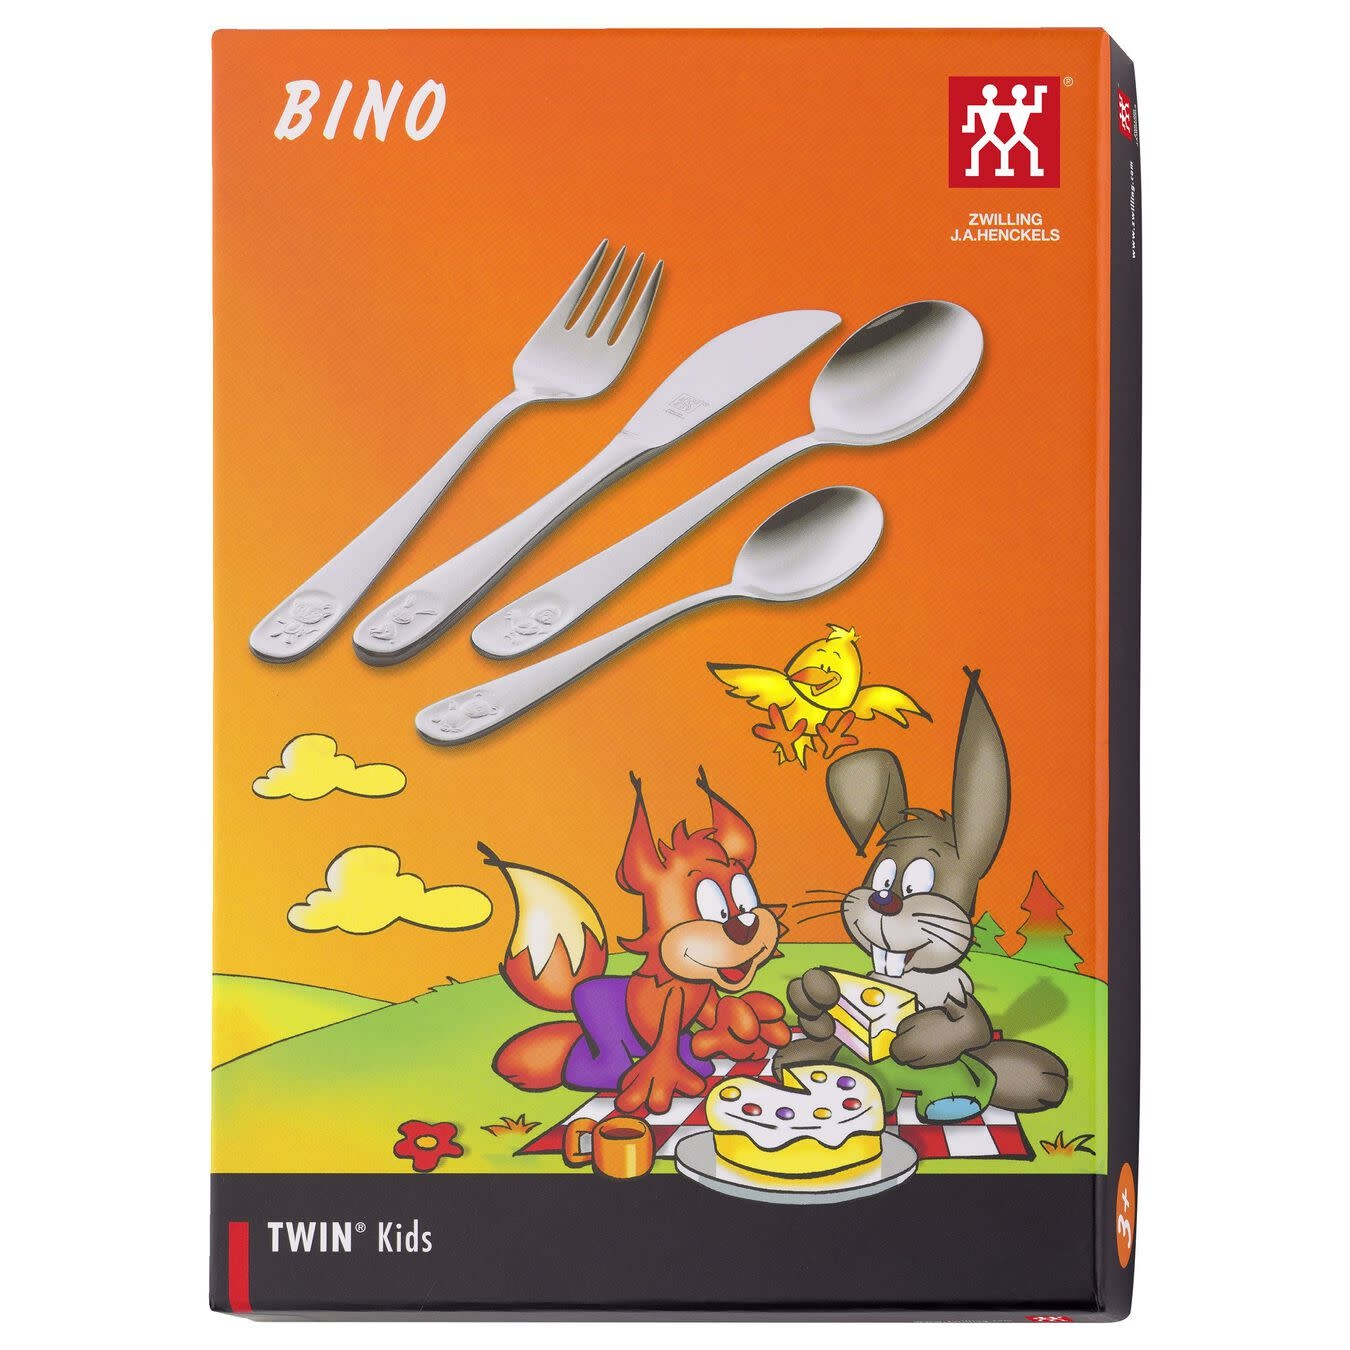 Zwilling J.A. Henckels 4pc Children's Set - Bino